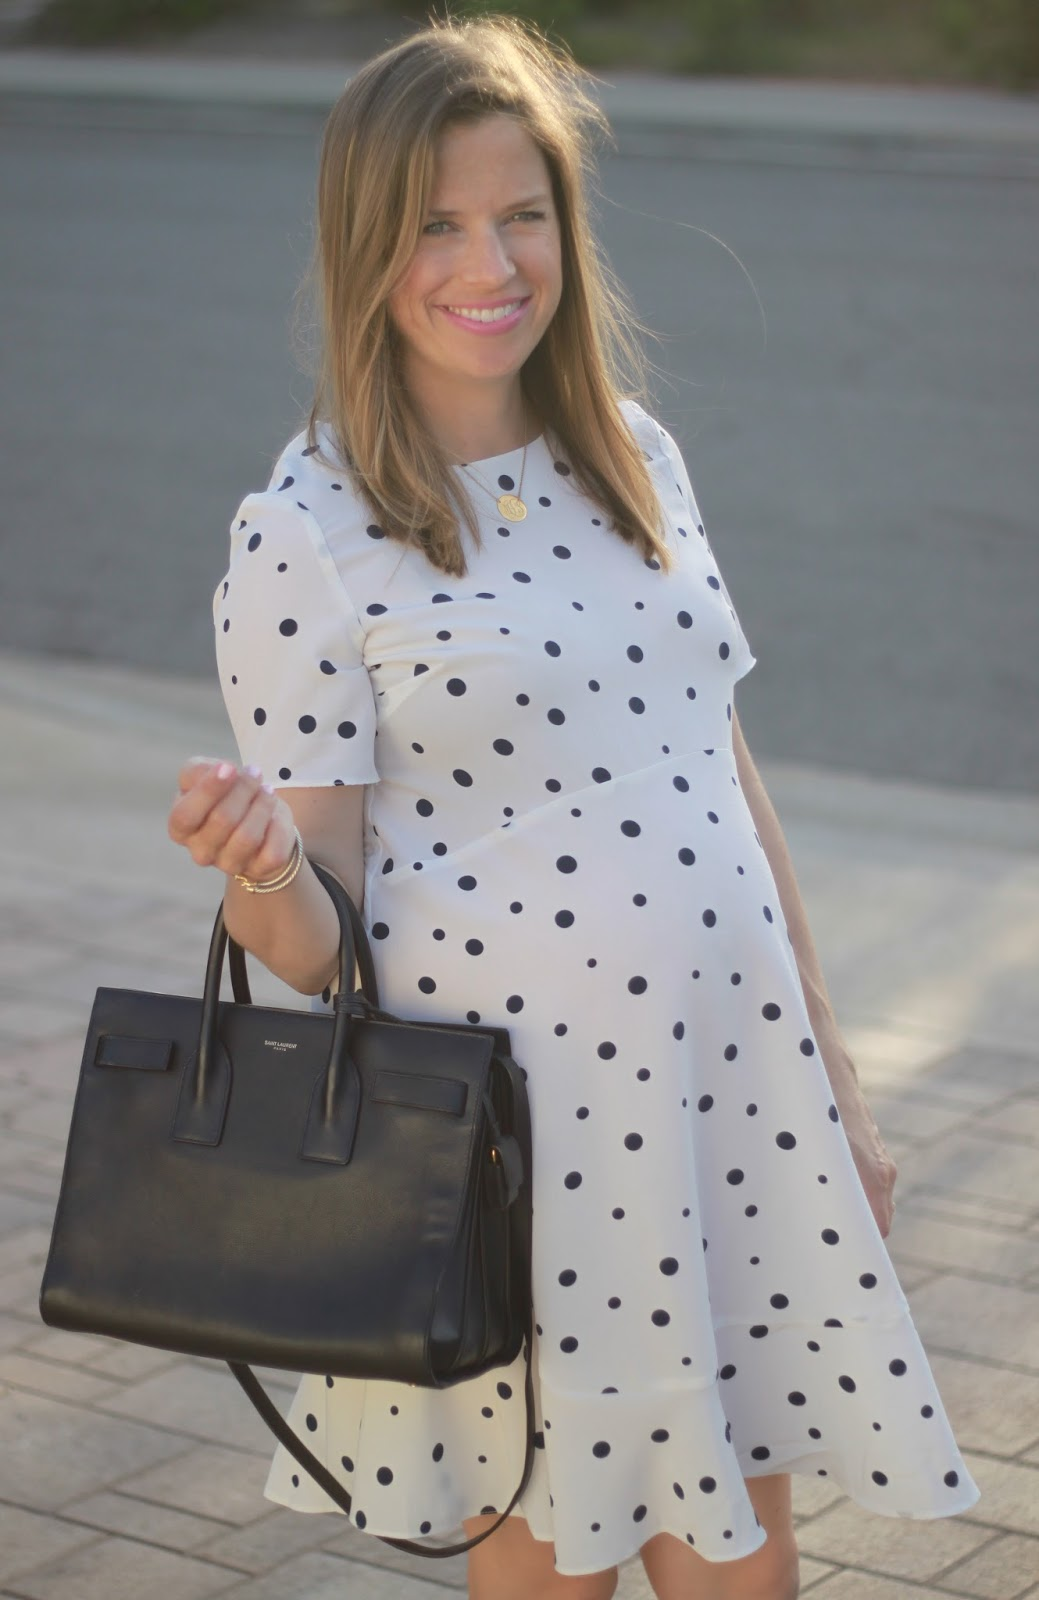 maternity polka dot dress